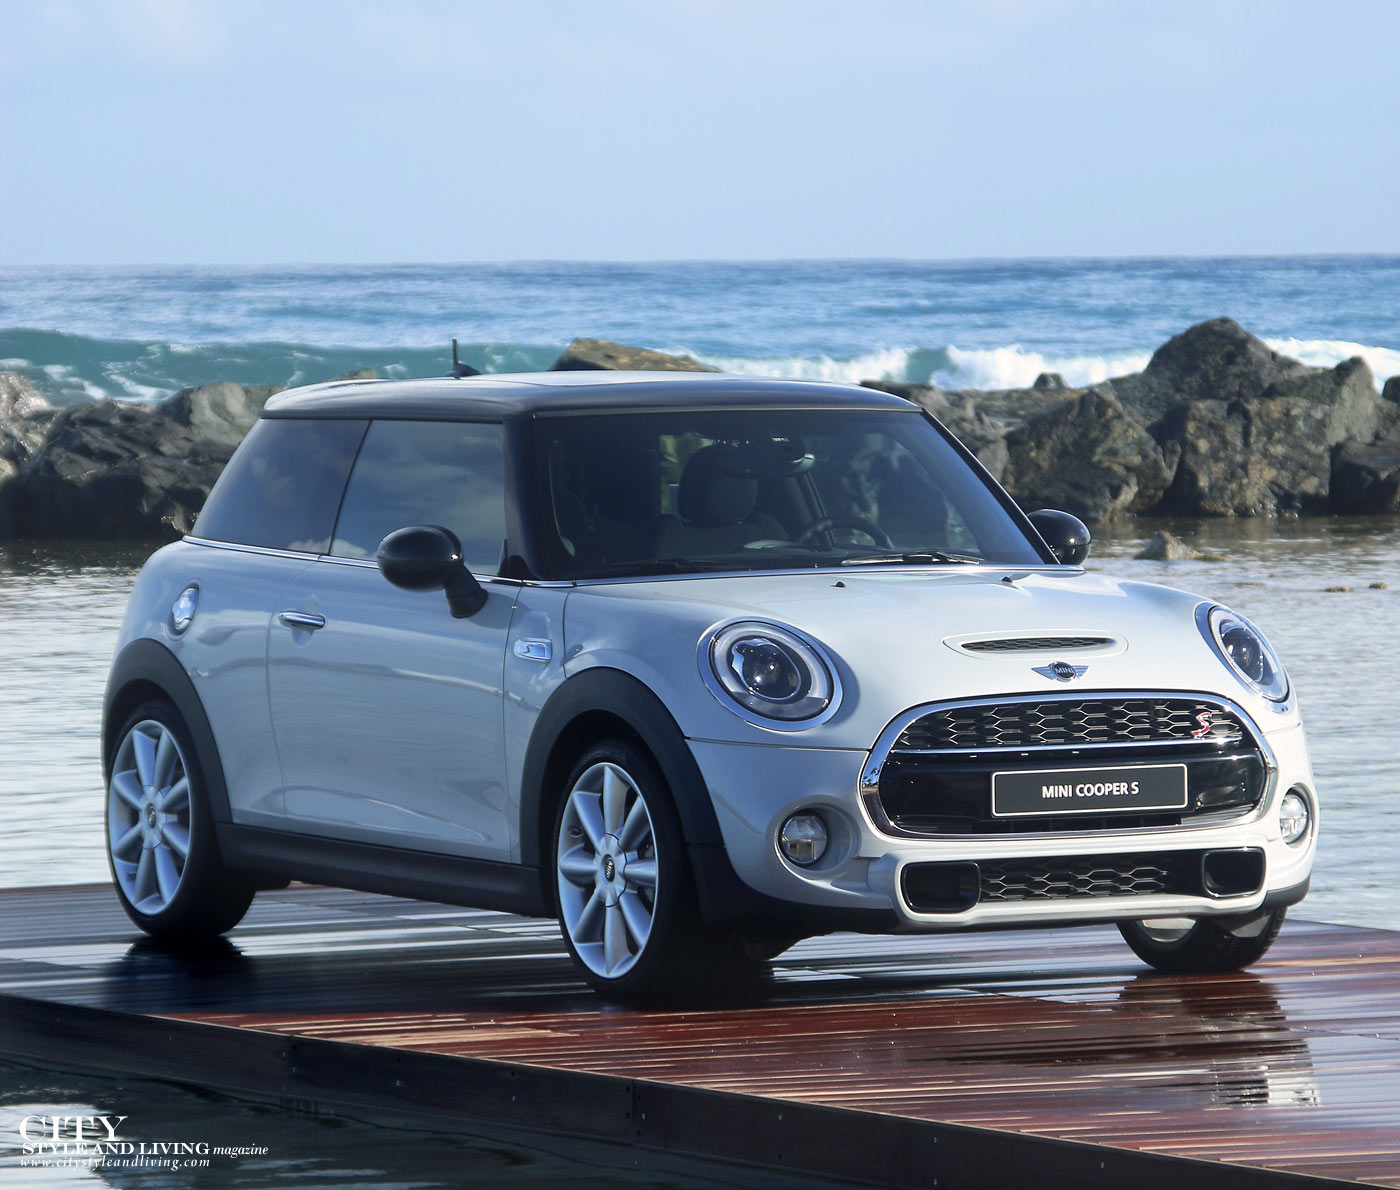 City Style and Living Magazine Mini Cooper S 2014 in Puerto Rico Beach on water